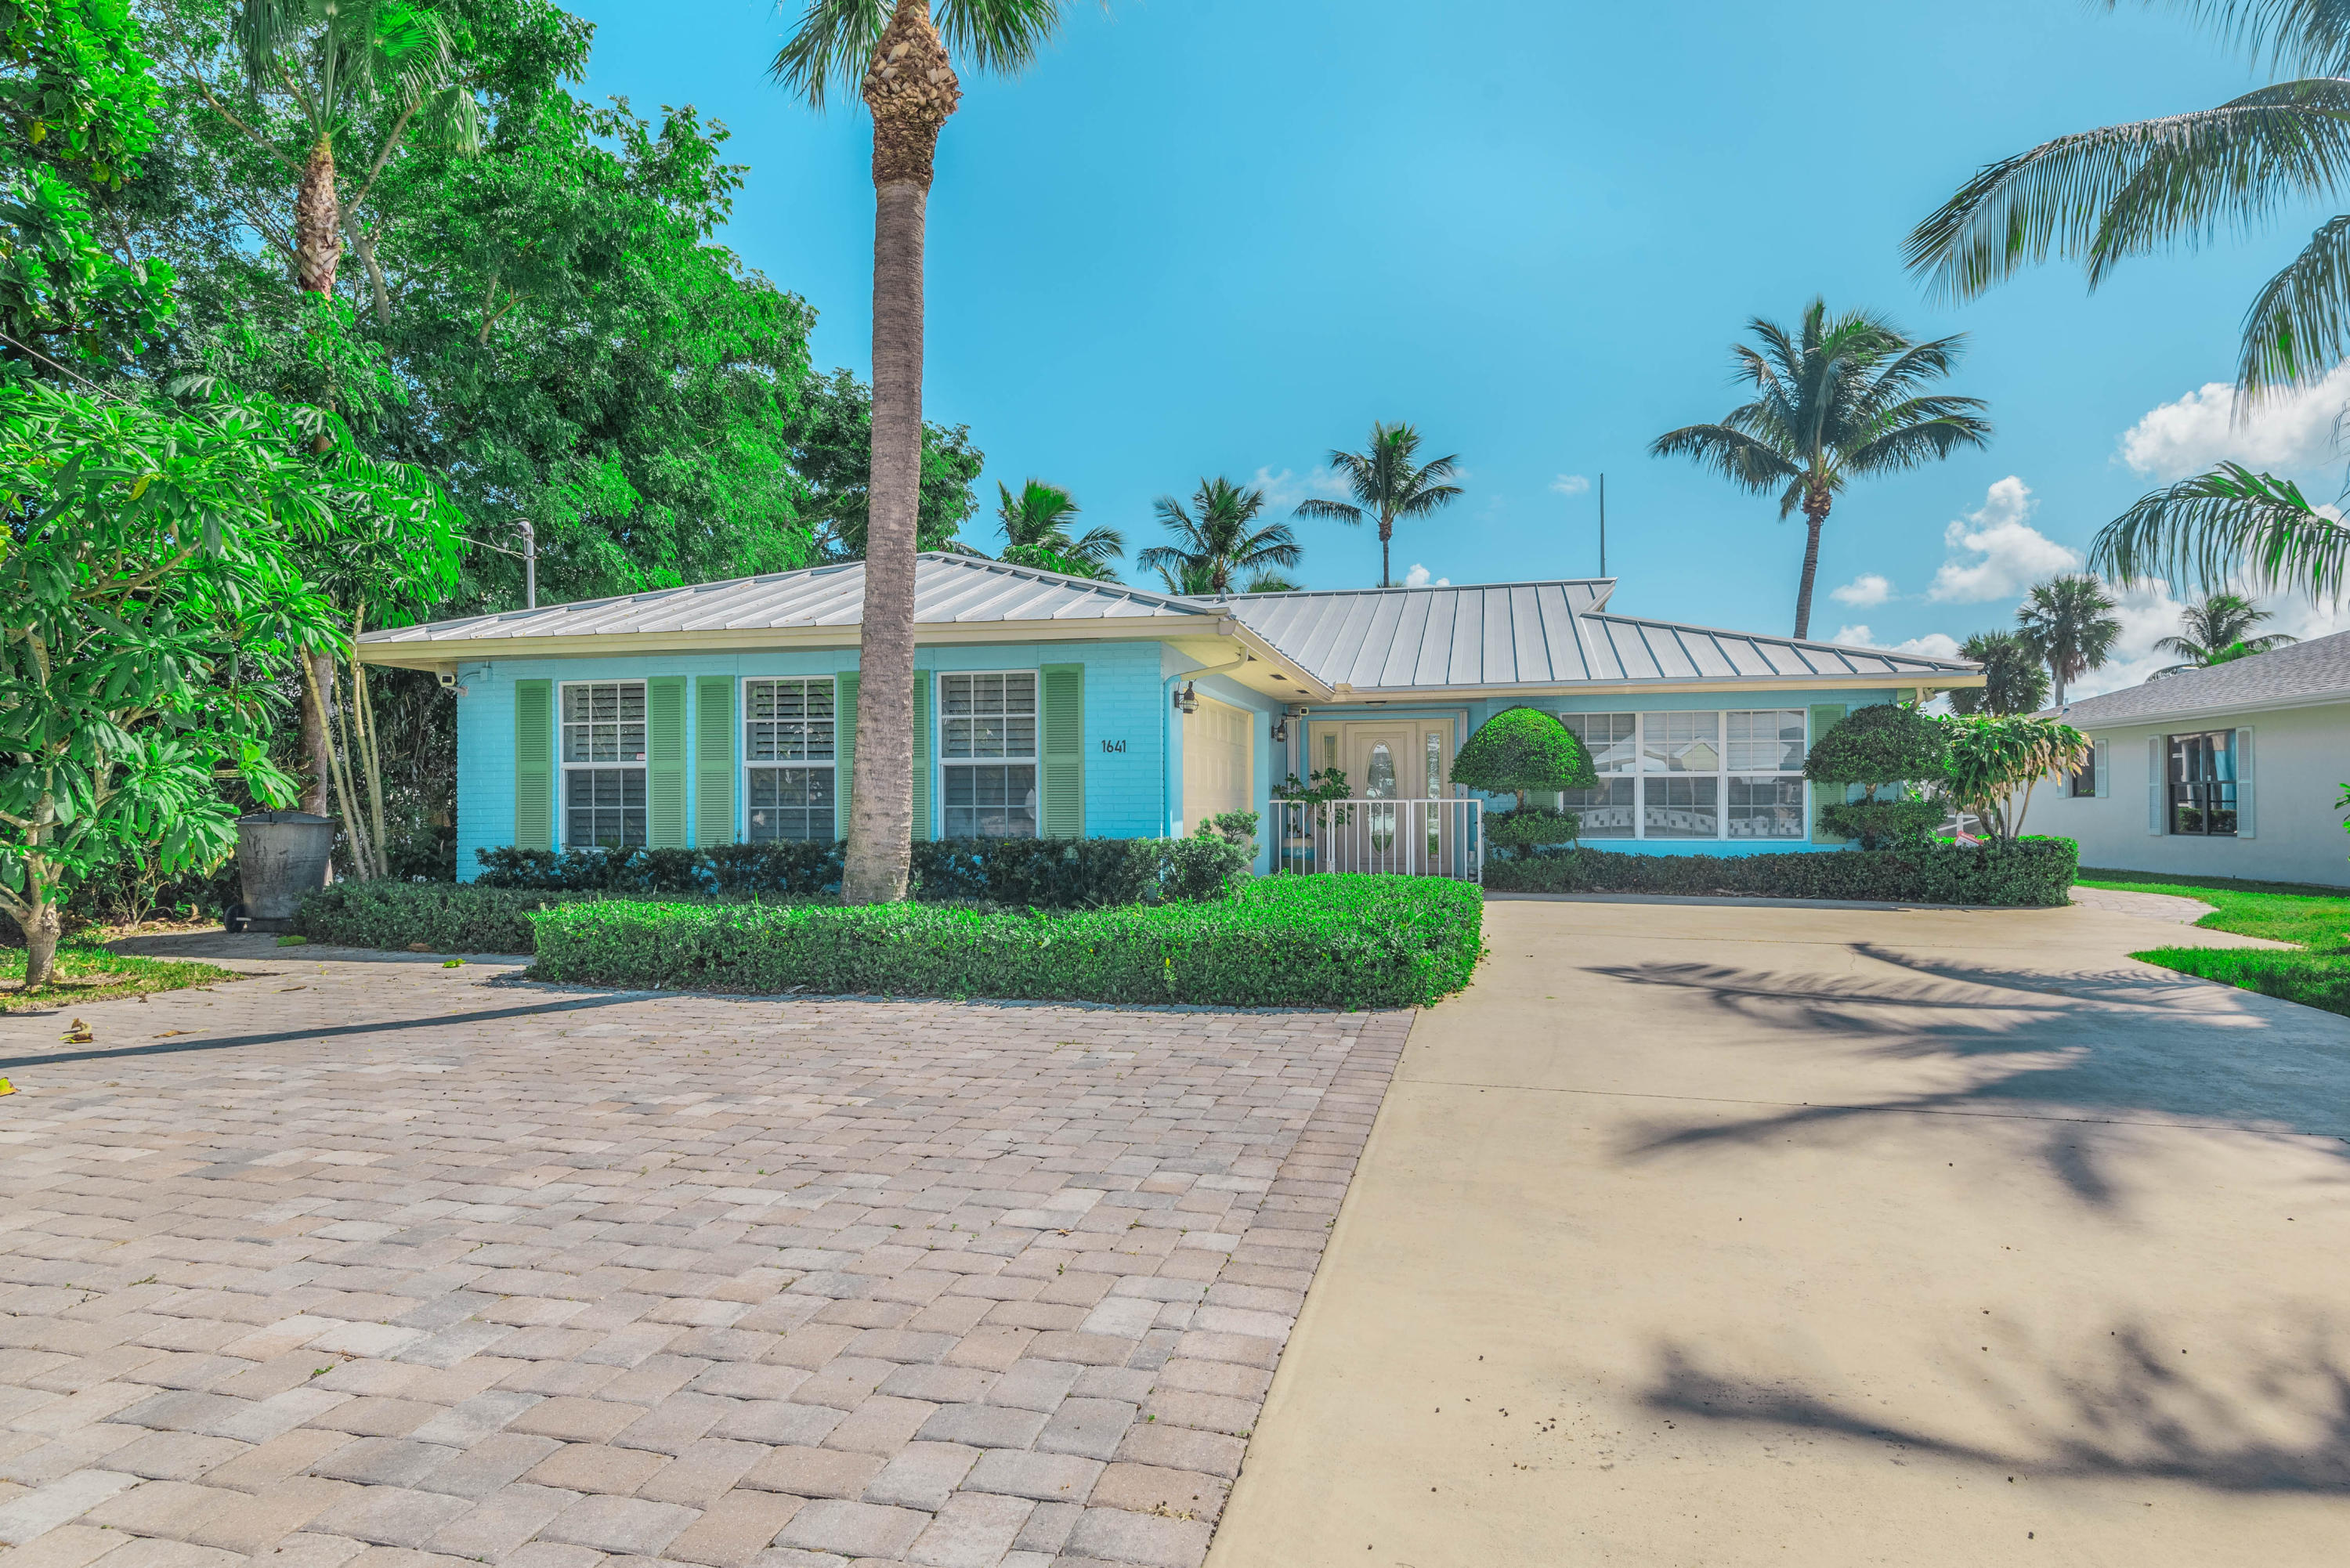 FT PIERCE REAL ESTATE